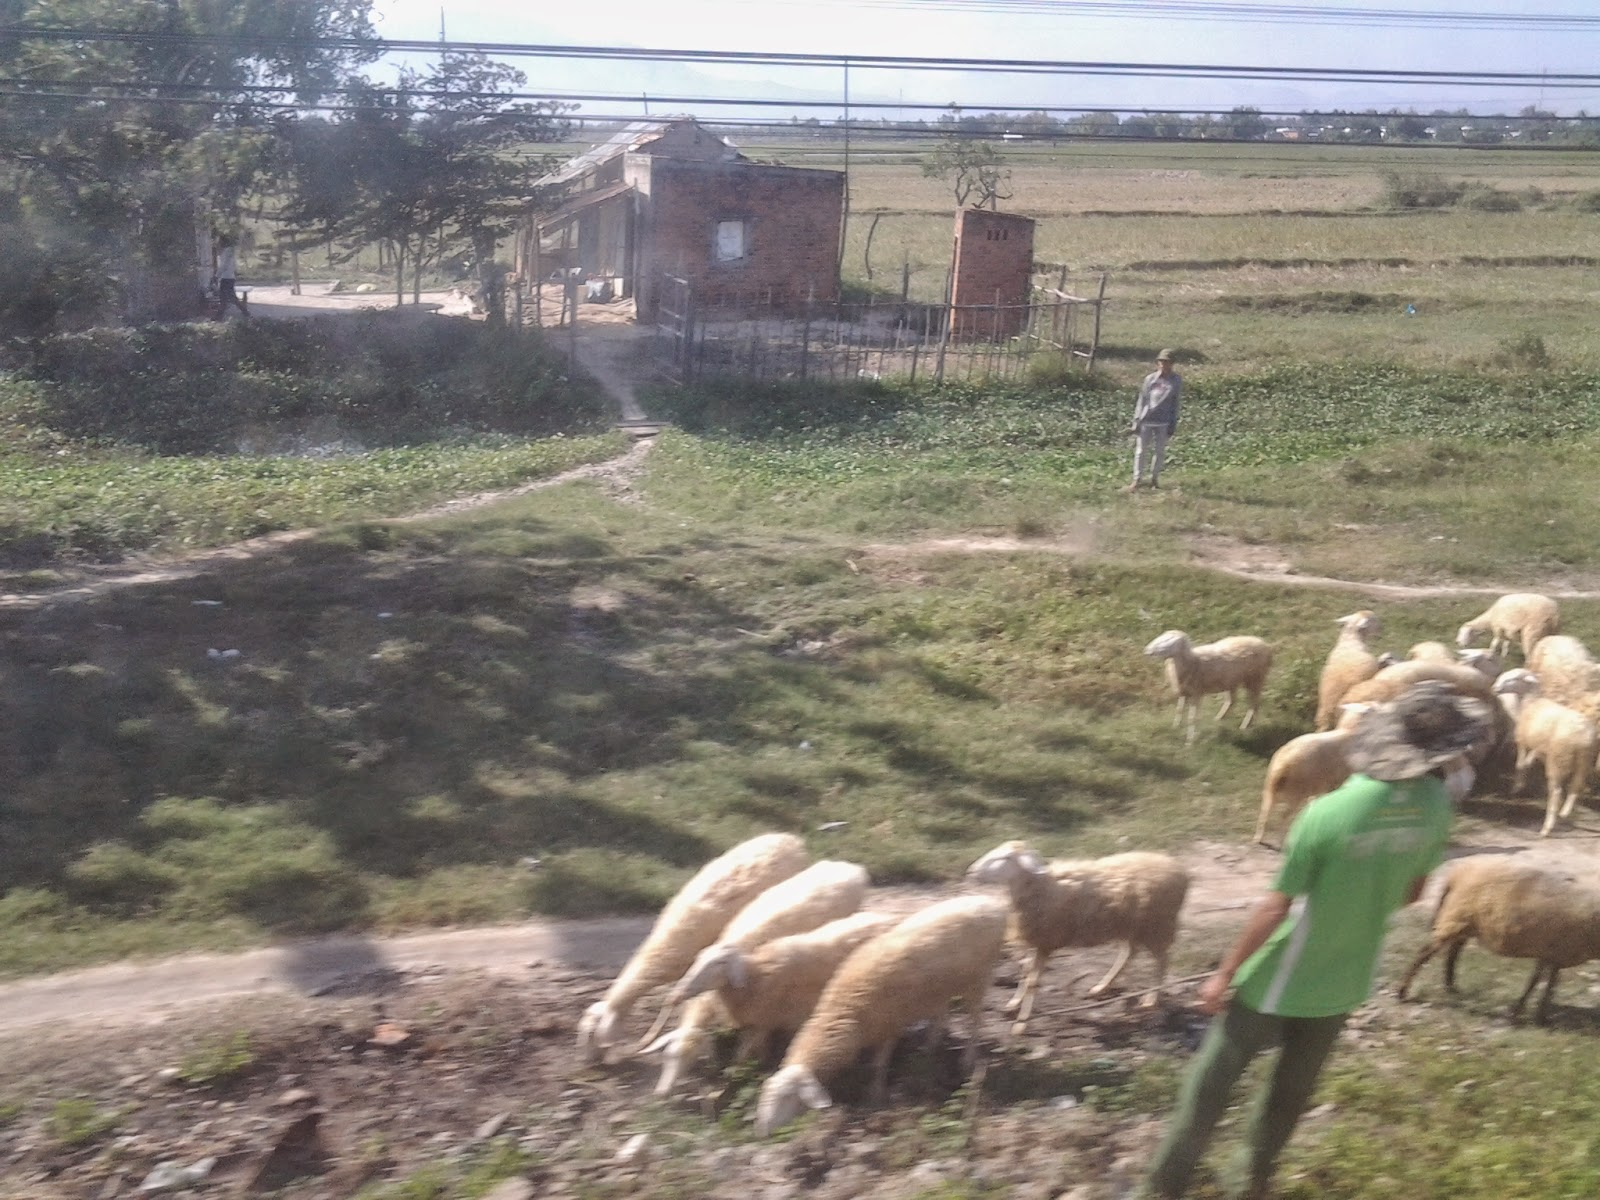 Vietnam Holiday train scenery: sheep